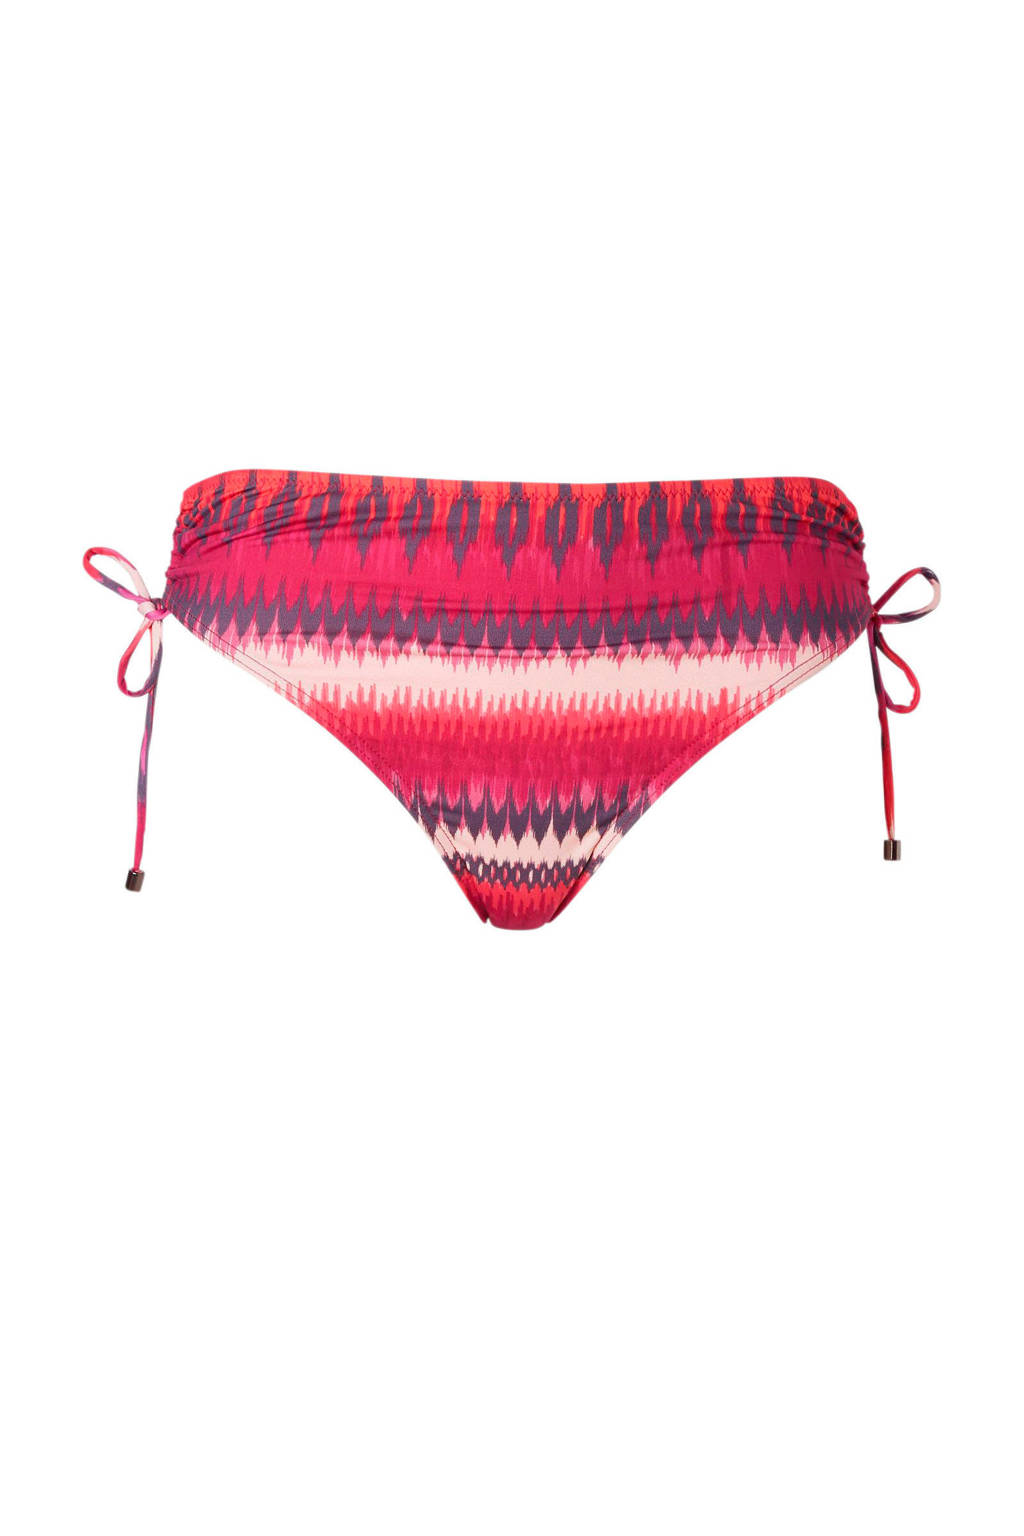 Cyell bikinibroekje high waist in all over print rood, Rood/oranje/wit